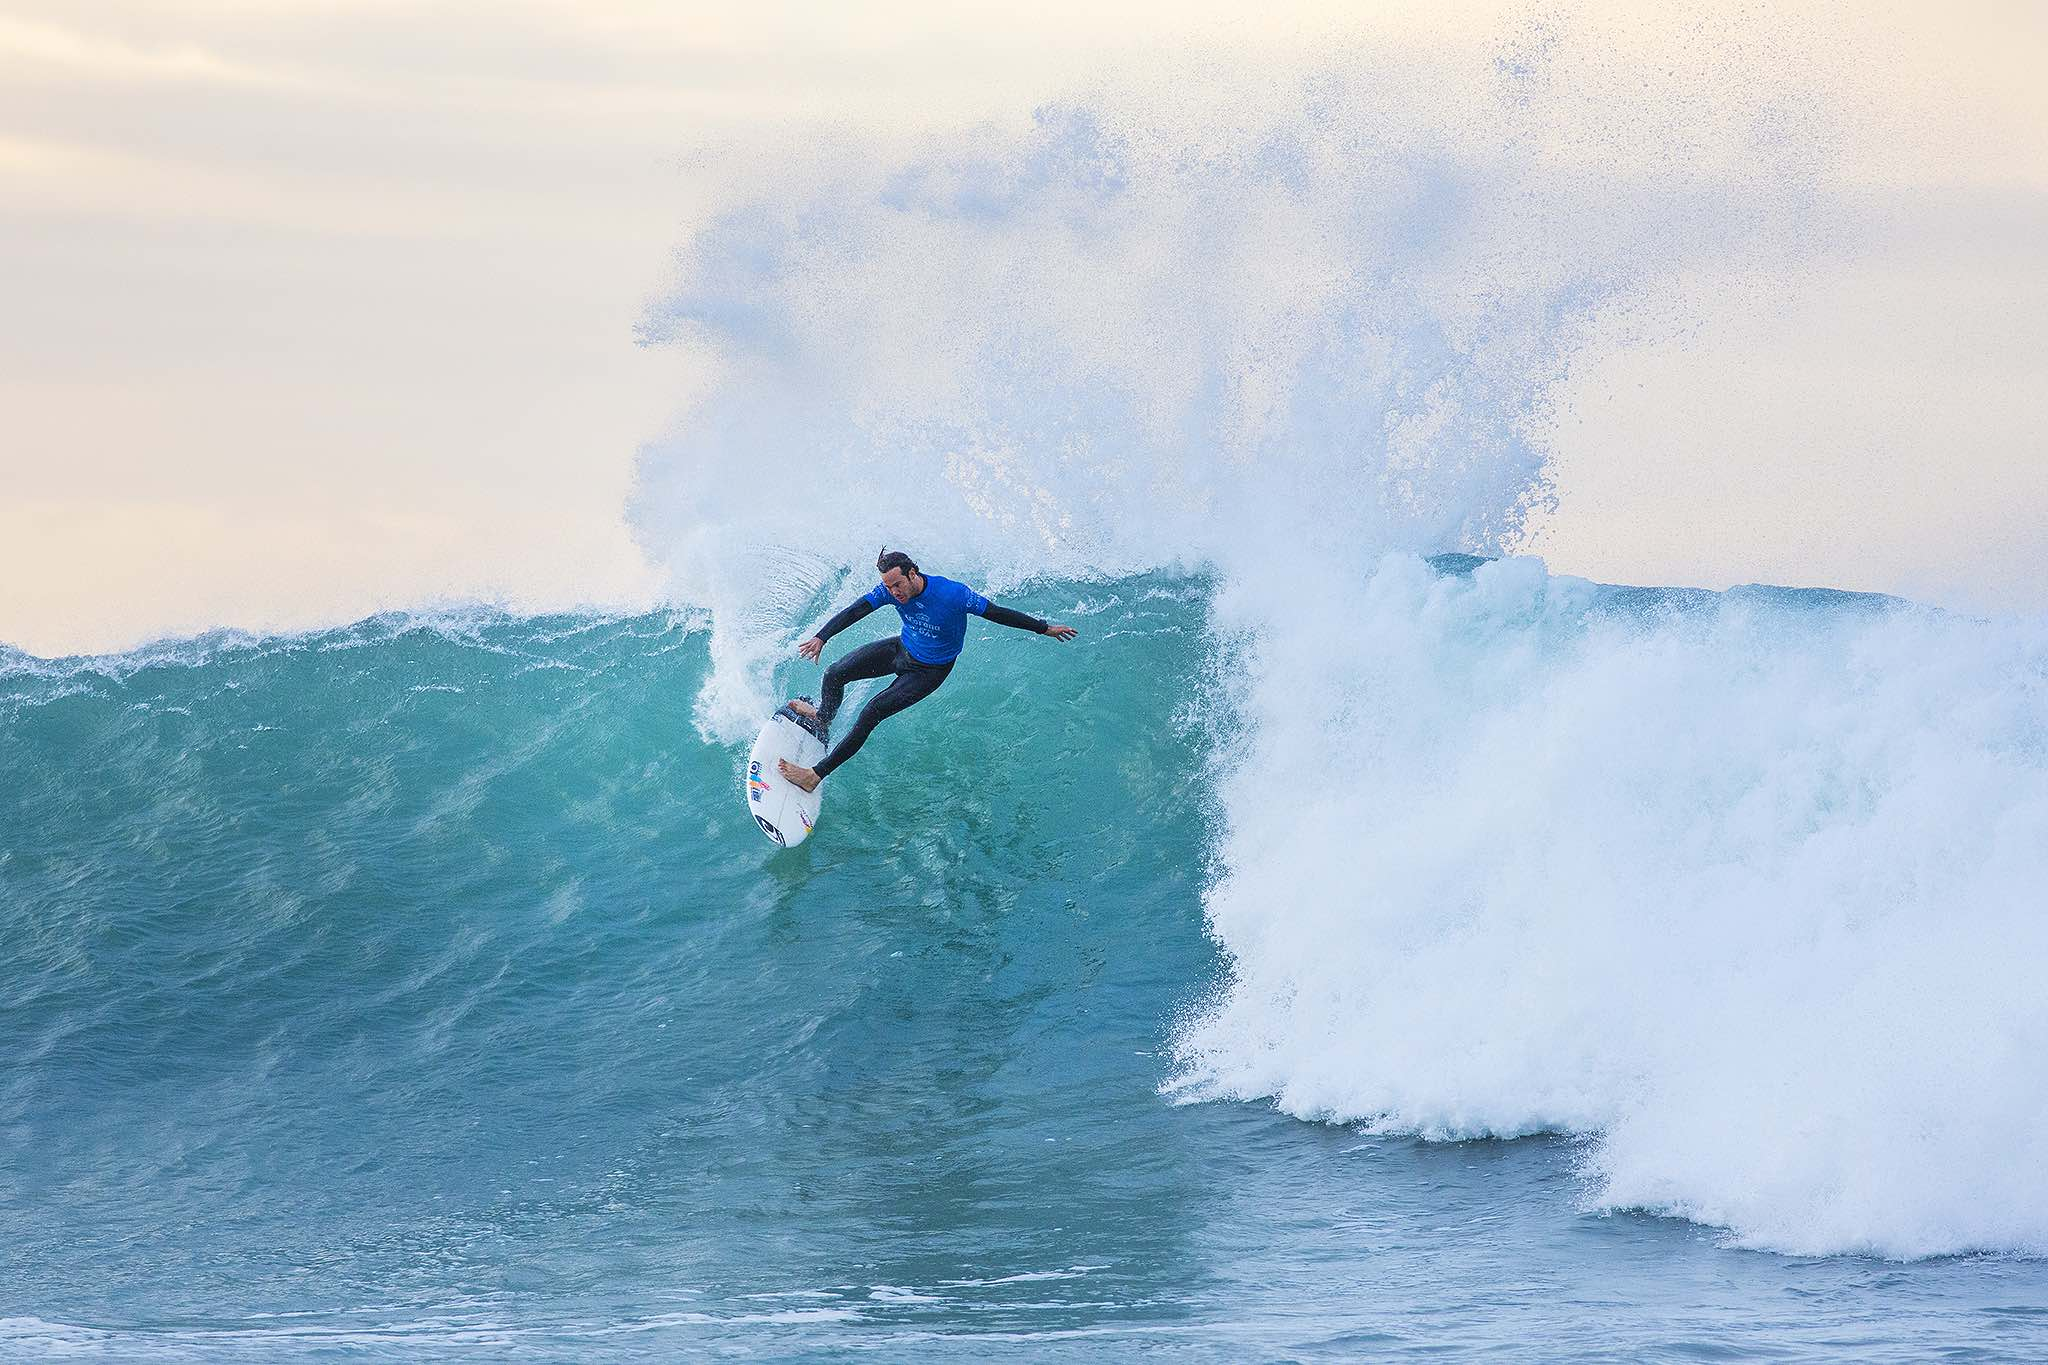 Jordy Smith surfing in the Corona Open J-Bay